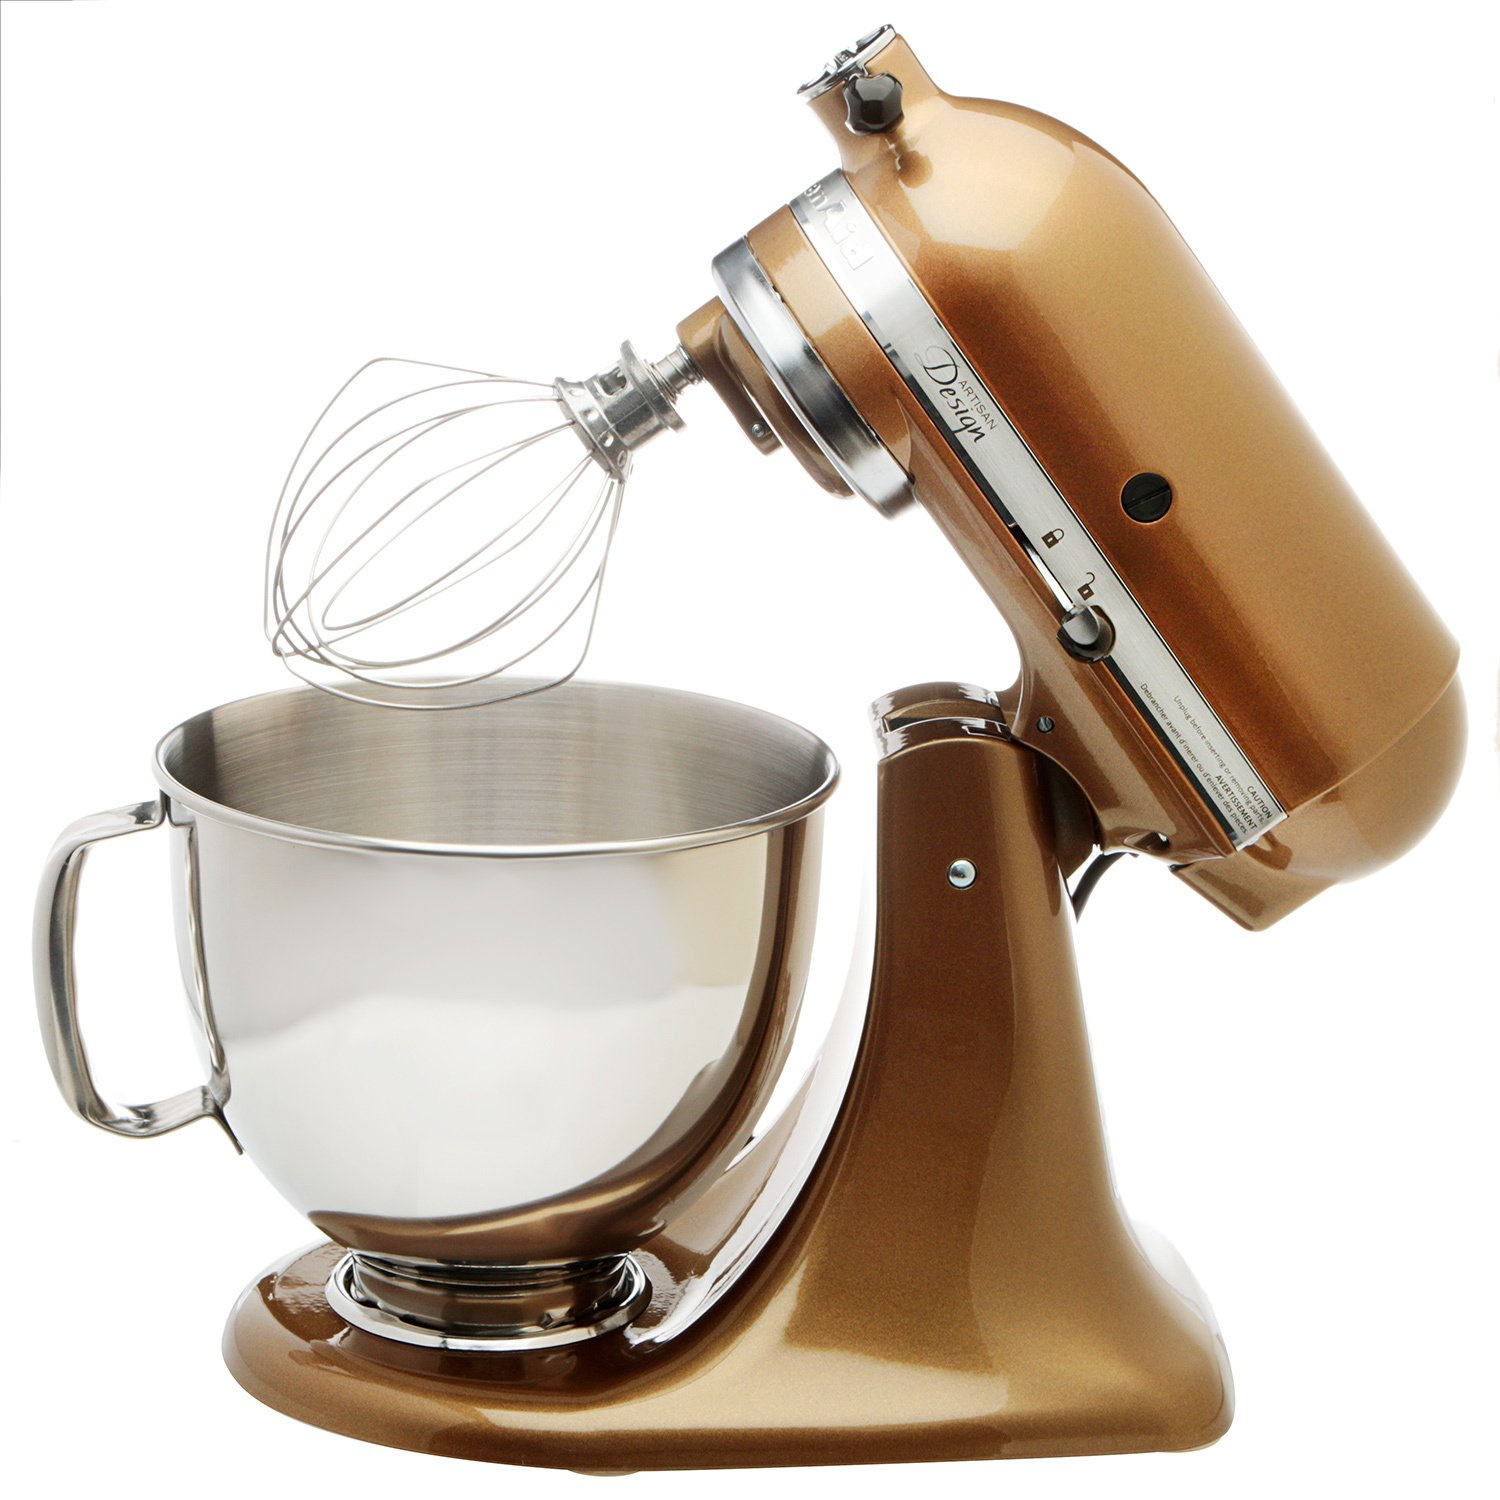 KitchenAid-Refurbished-Artisan-Series-5-Quart-Tilt-Head-Stand-Mixer-RRK150 thumbnail 81